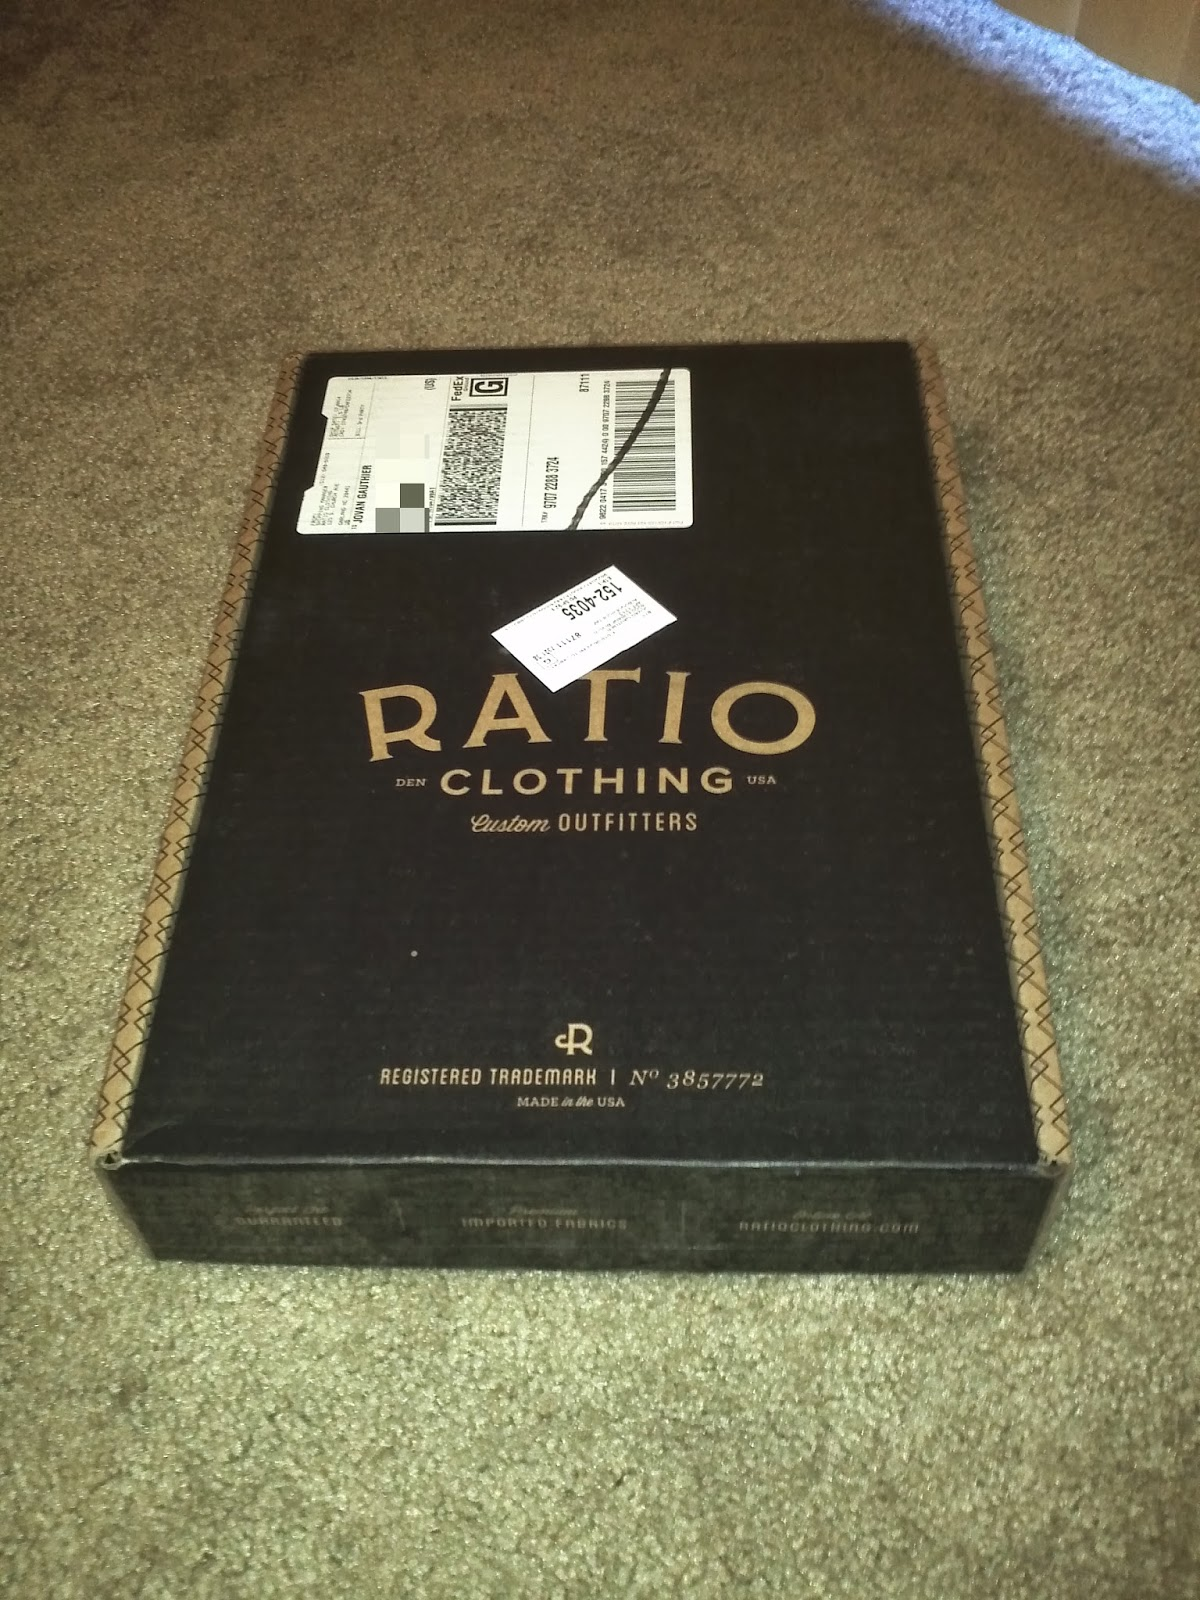 Ratio Clothing coupon code Click